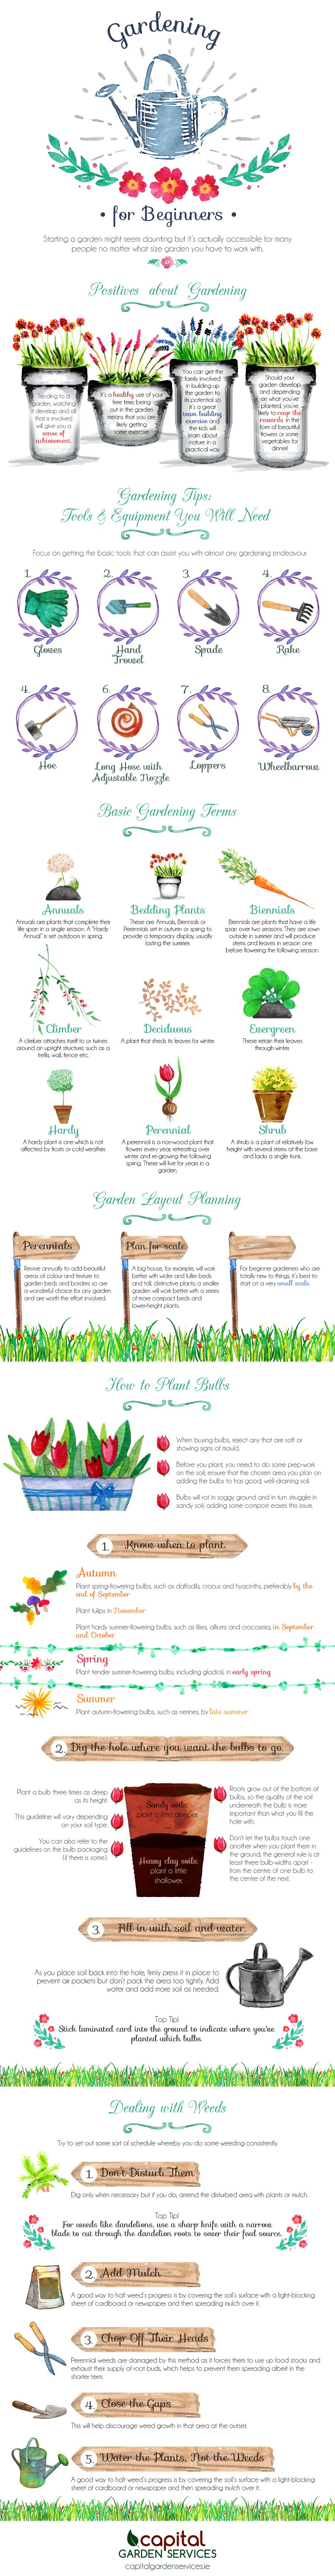 Gardening for Beginners #Infographic